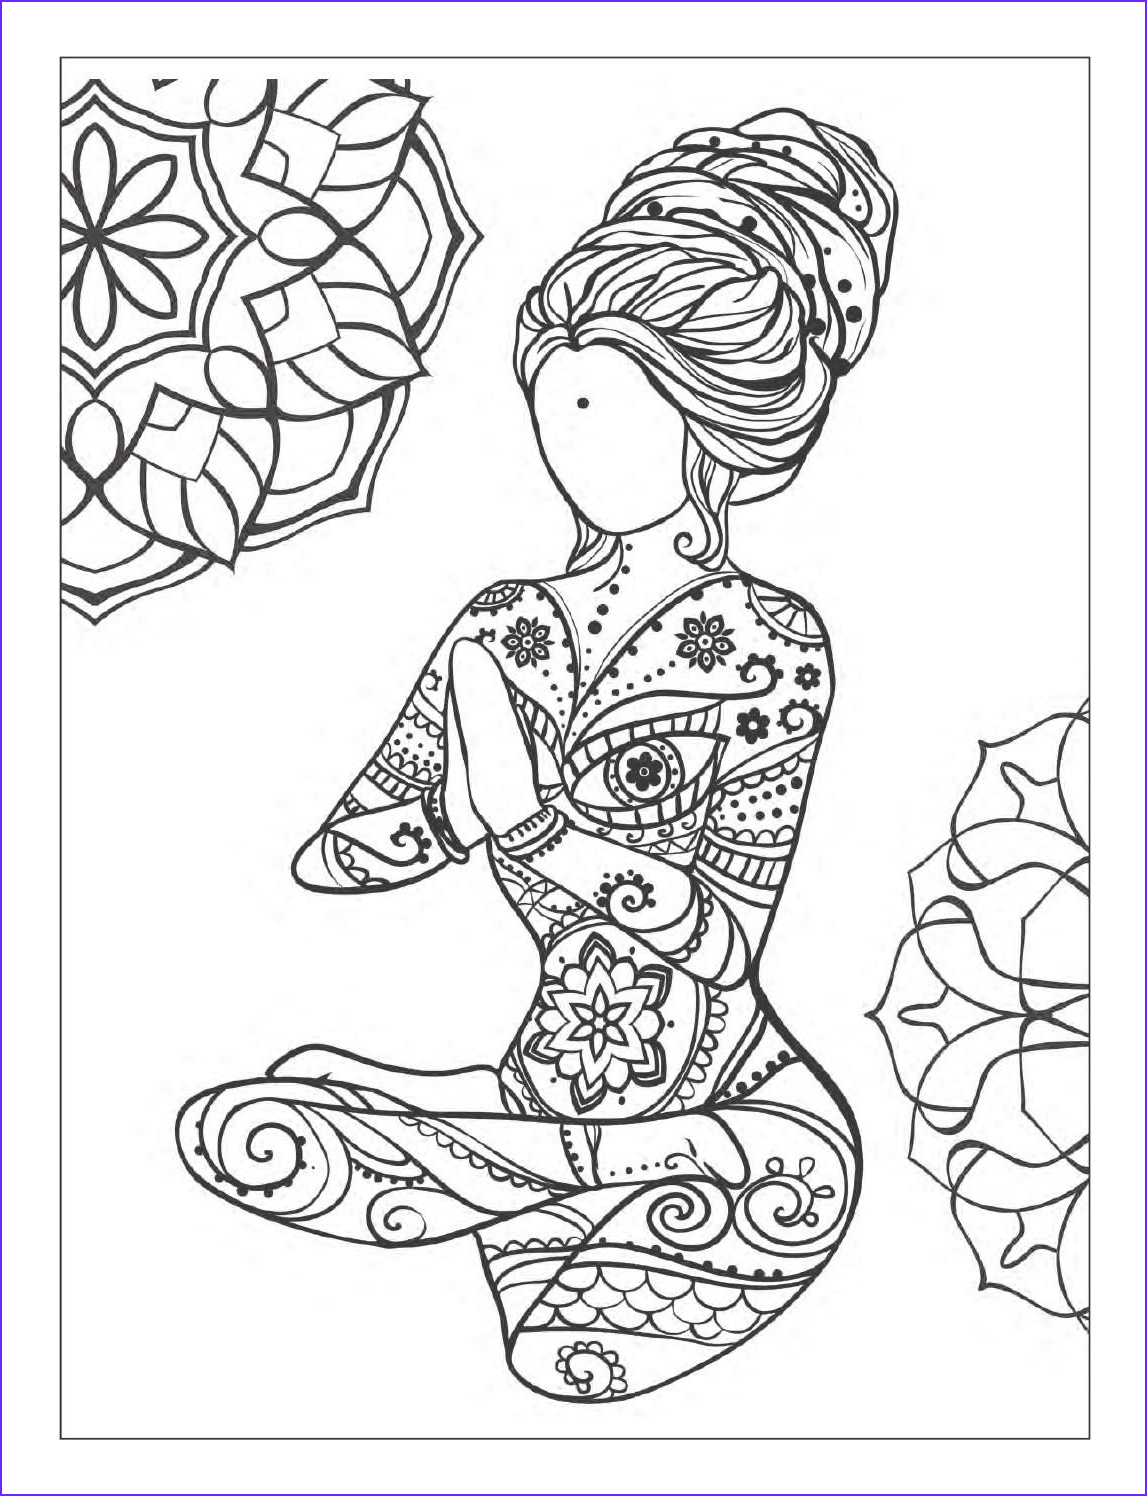 Mandala Adult Coloring Book Awesome Photos Yoga and Meditation Coloring Book for Adults with Yoga